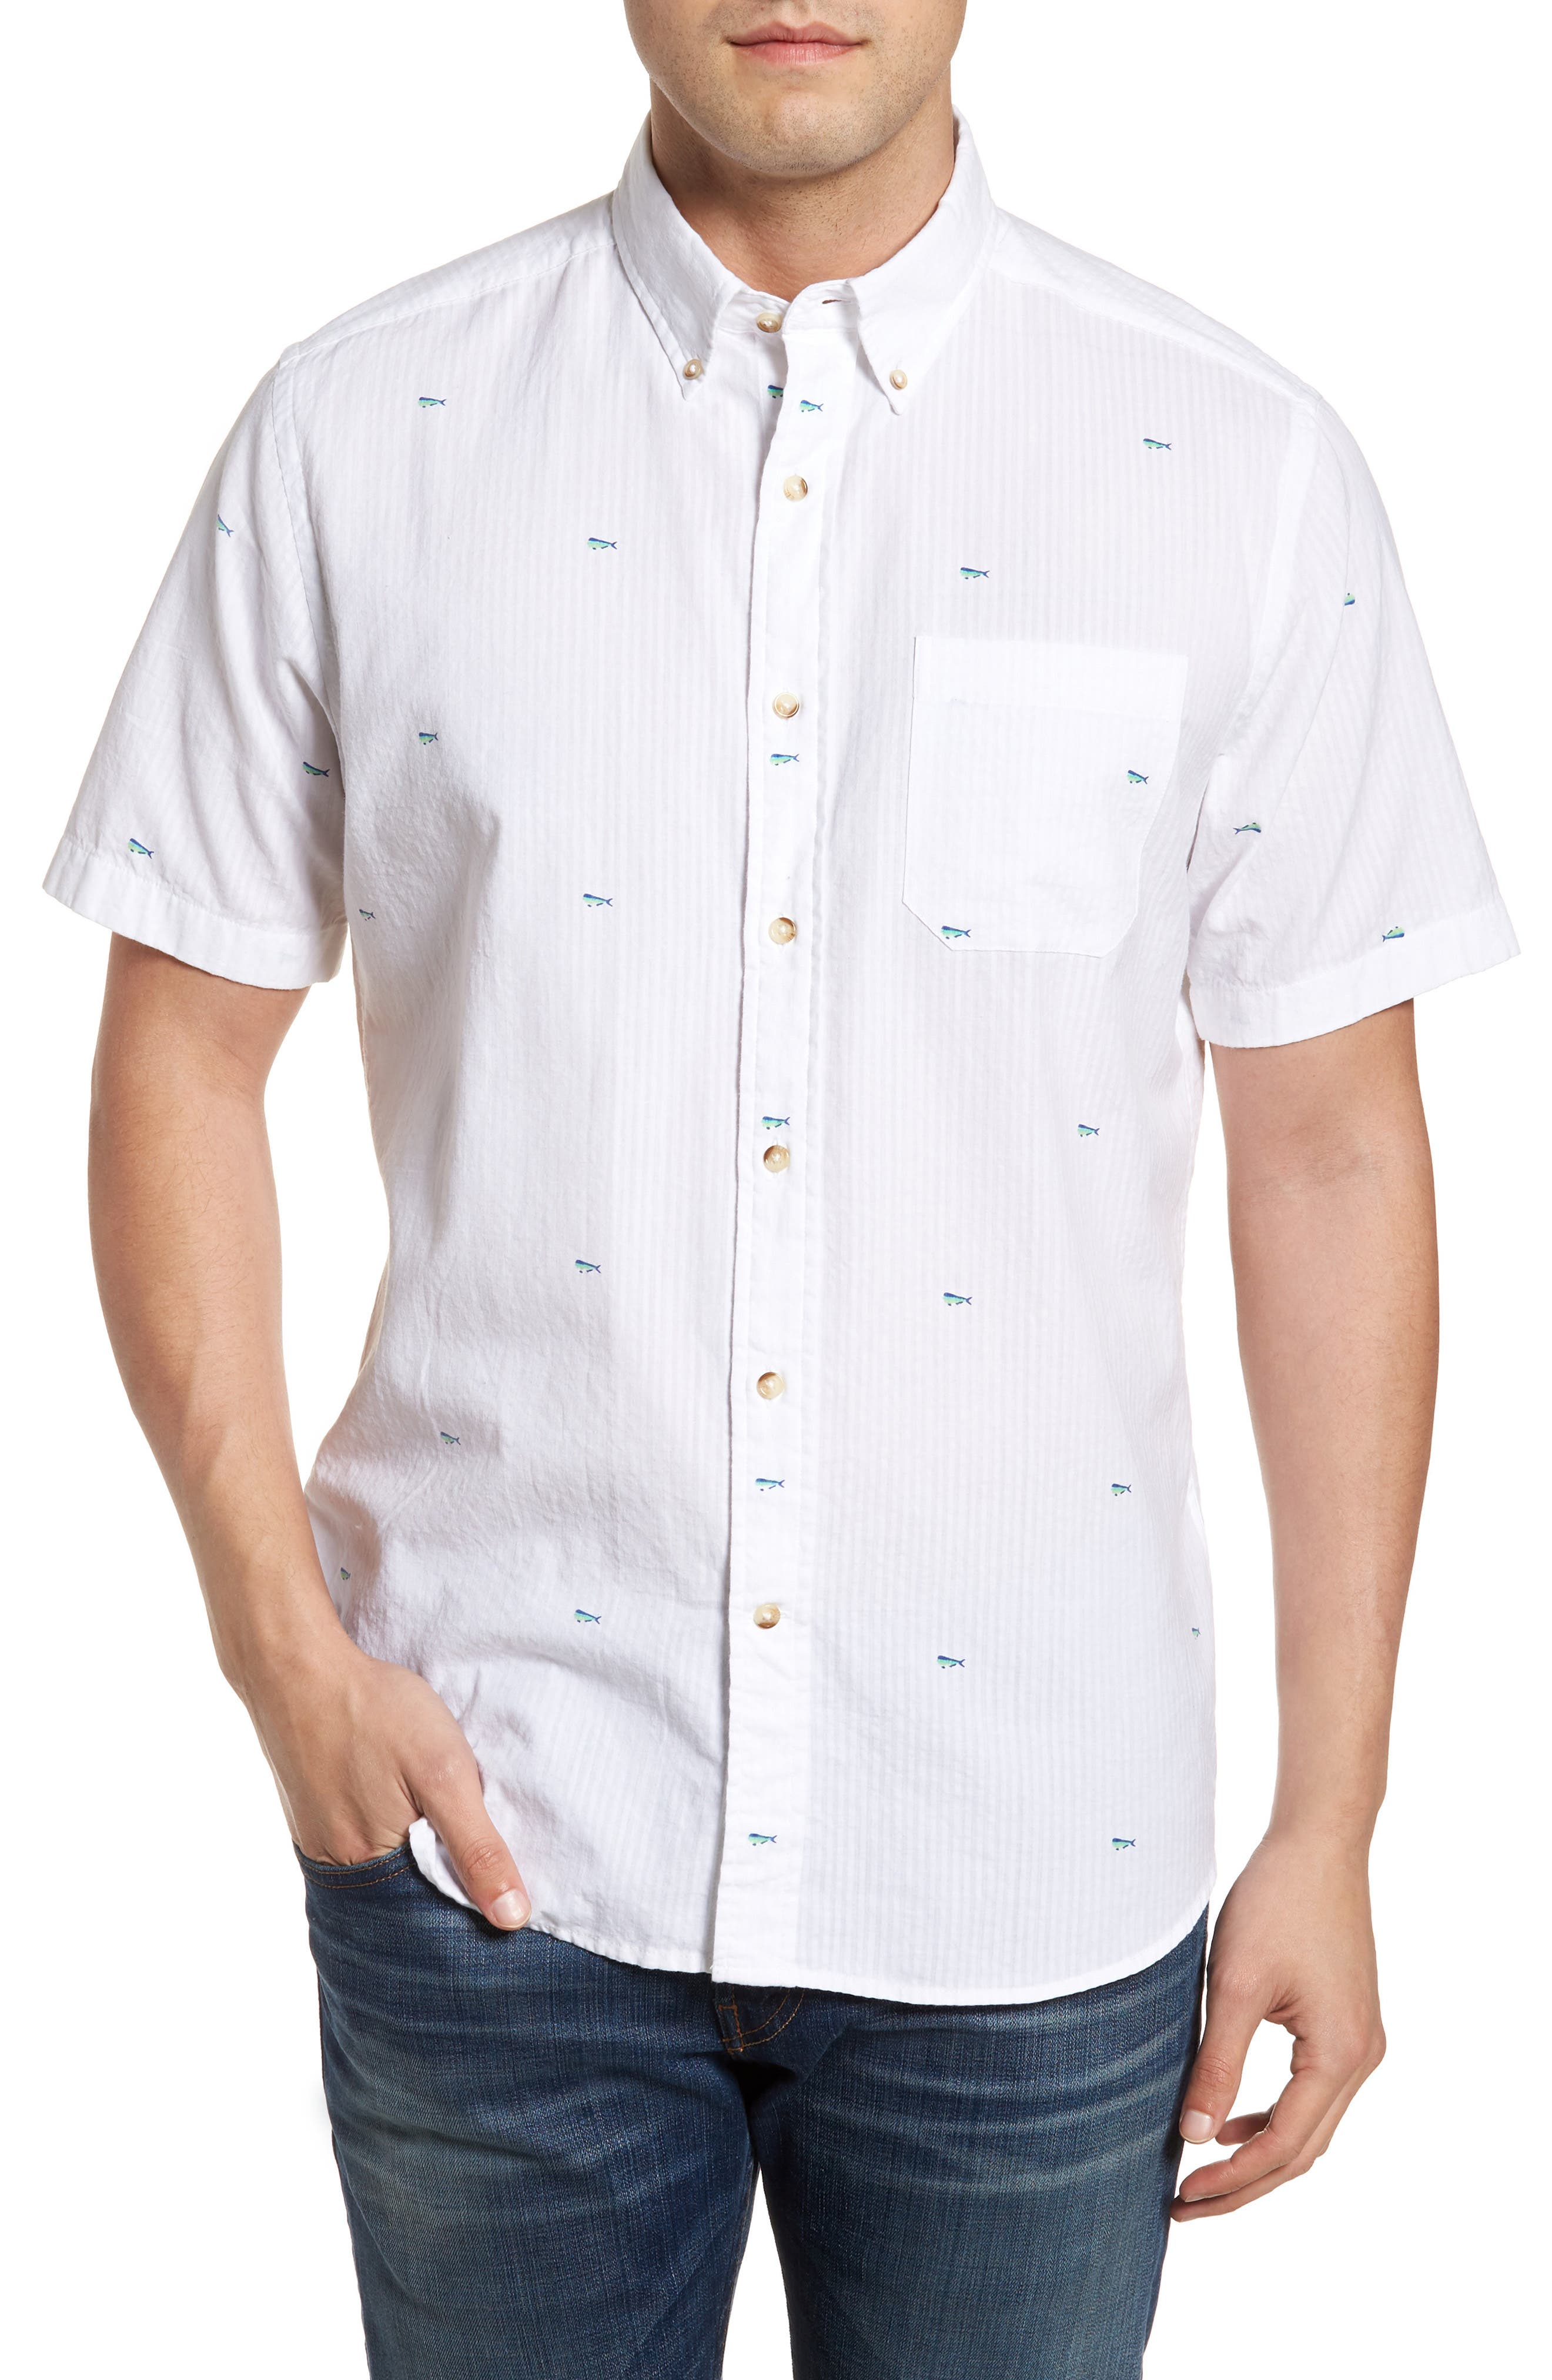 Catch of the Day Sport Shirt,                         Main,                         color, 107